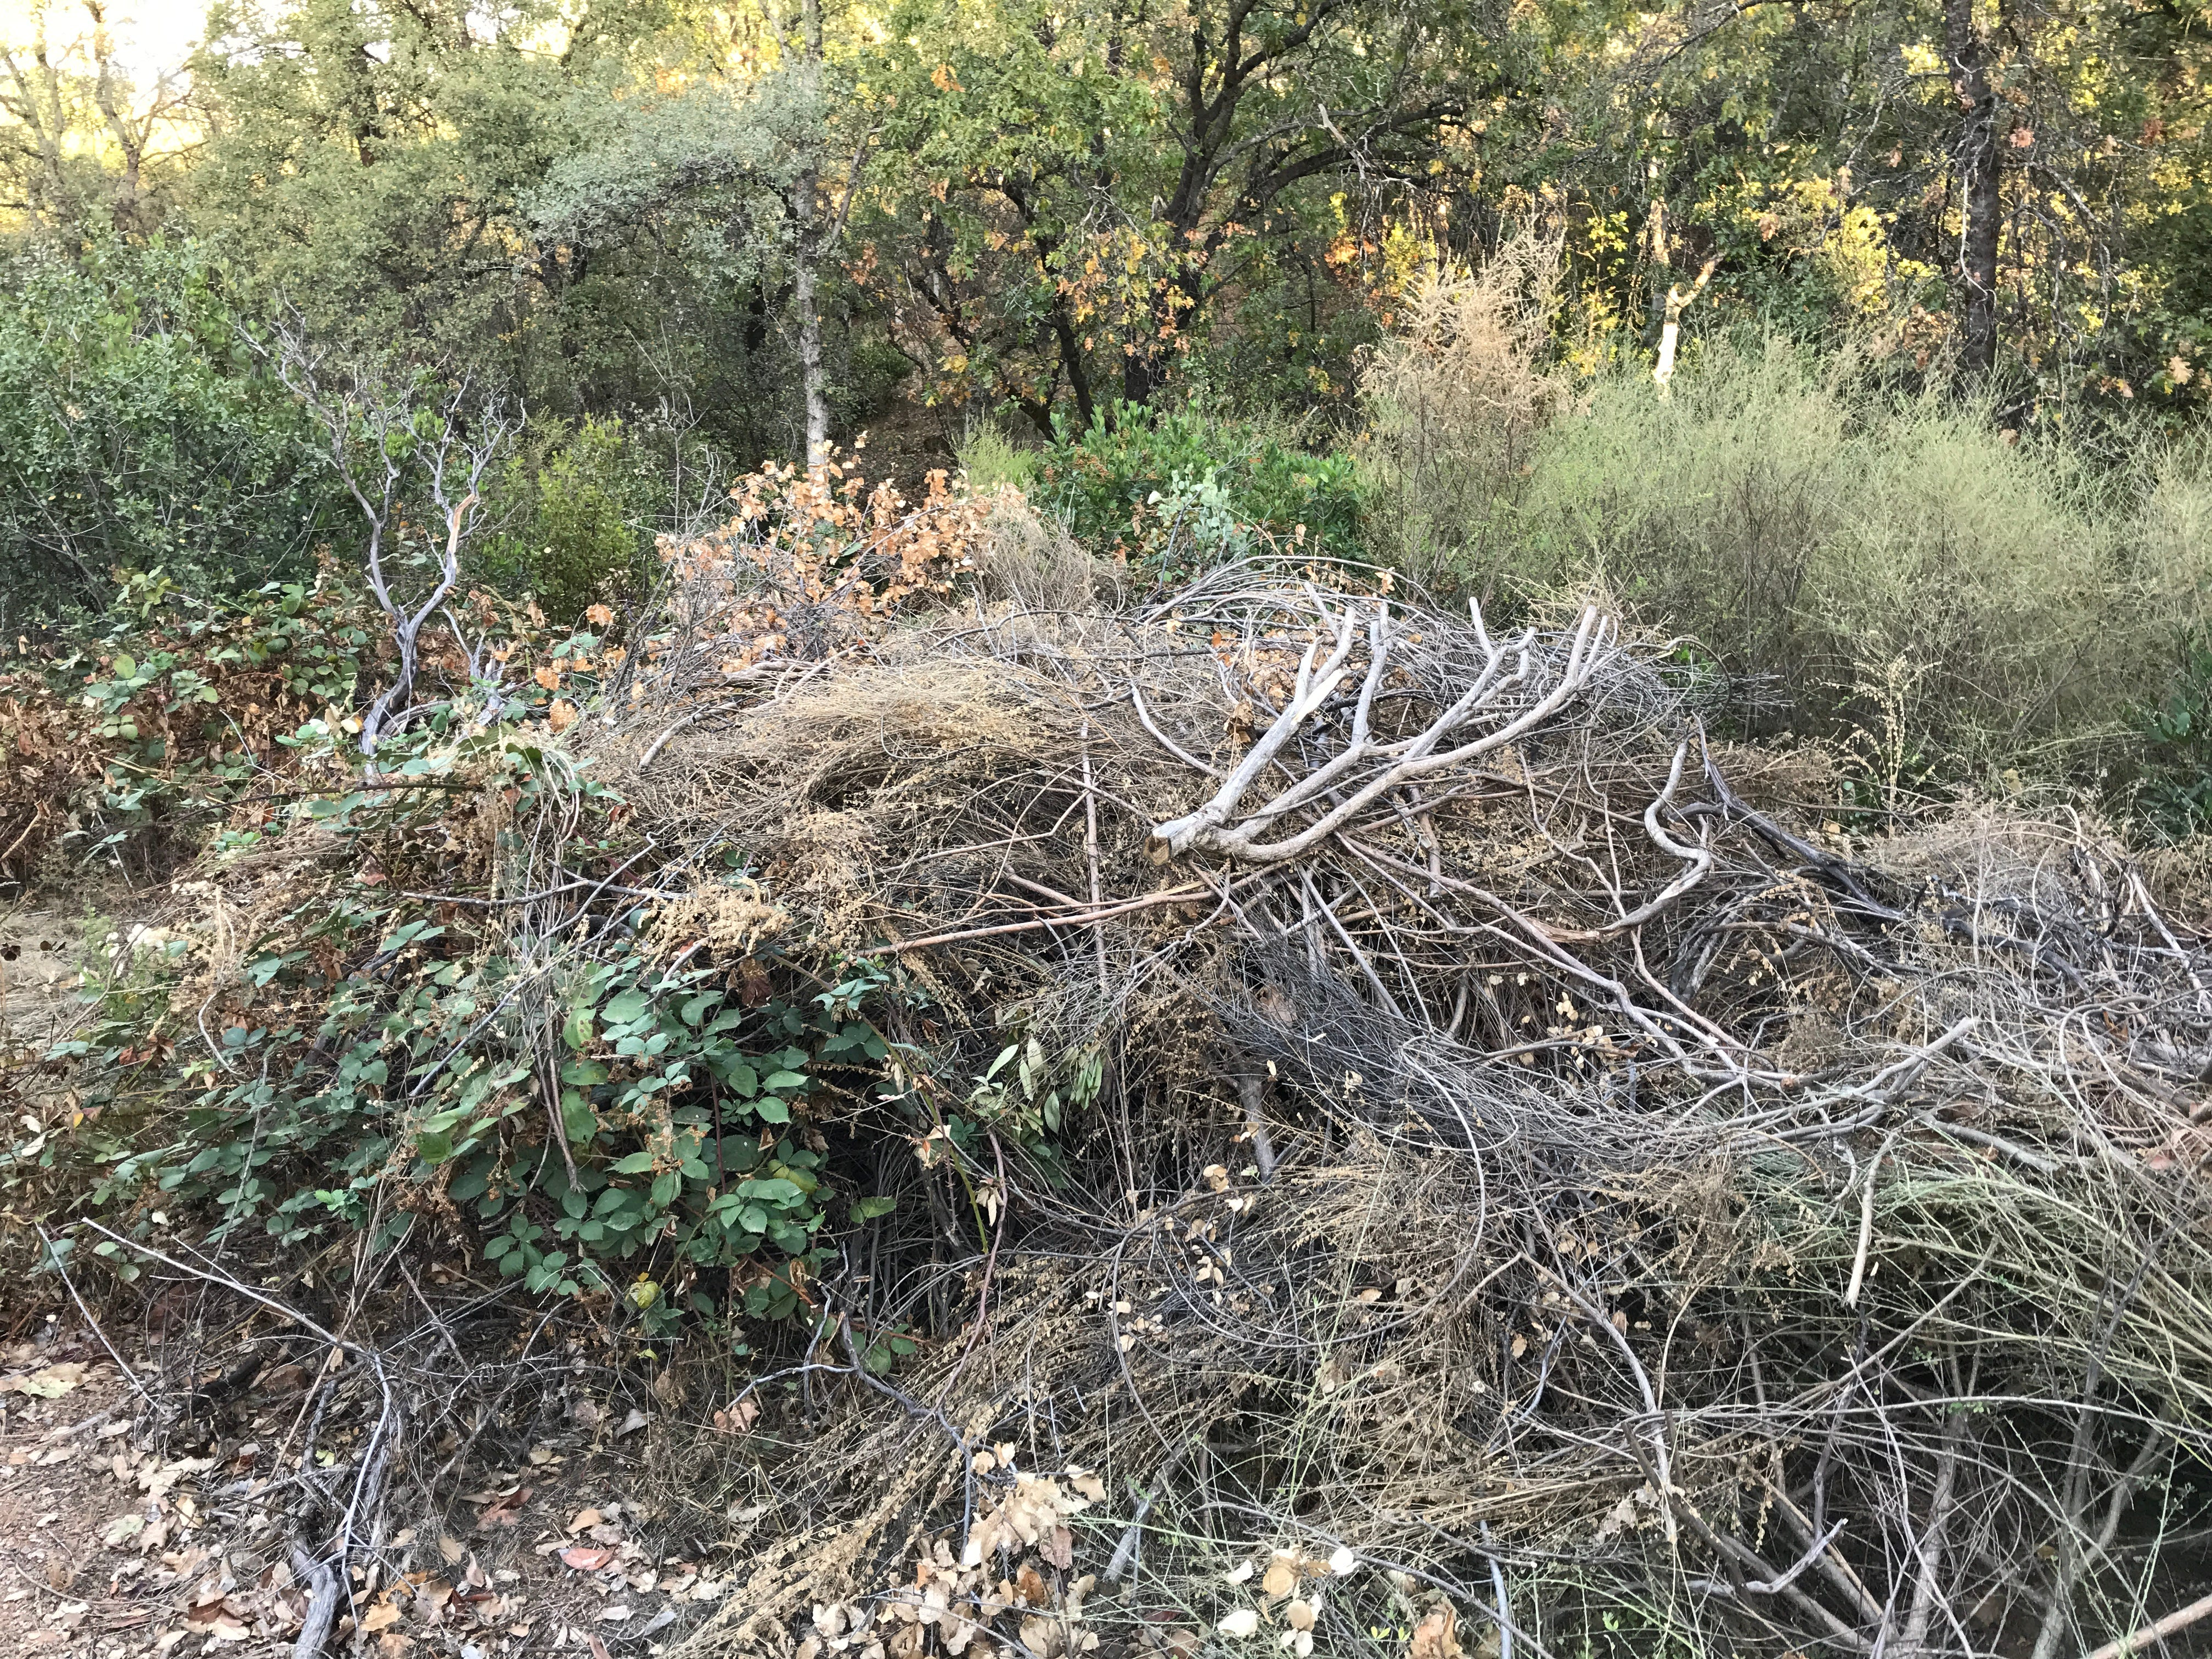 A large pile of brush and tree trimmings sit in open space near Palatine Court in Redding. Redding Fire Marshal Craig Wittner says the material apparently came from a nearby home, dumped there by a resident or landscaper.